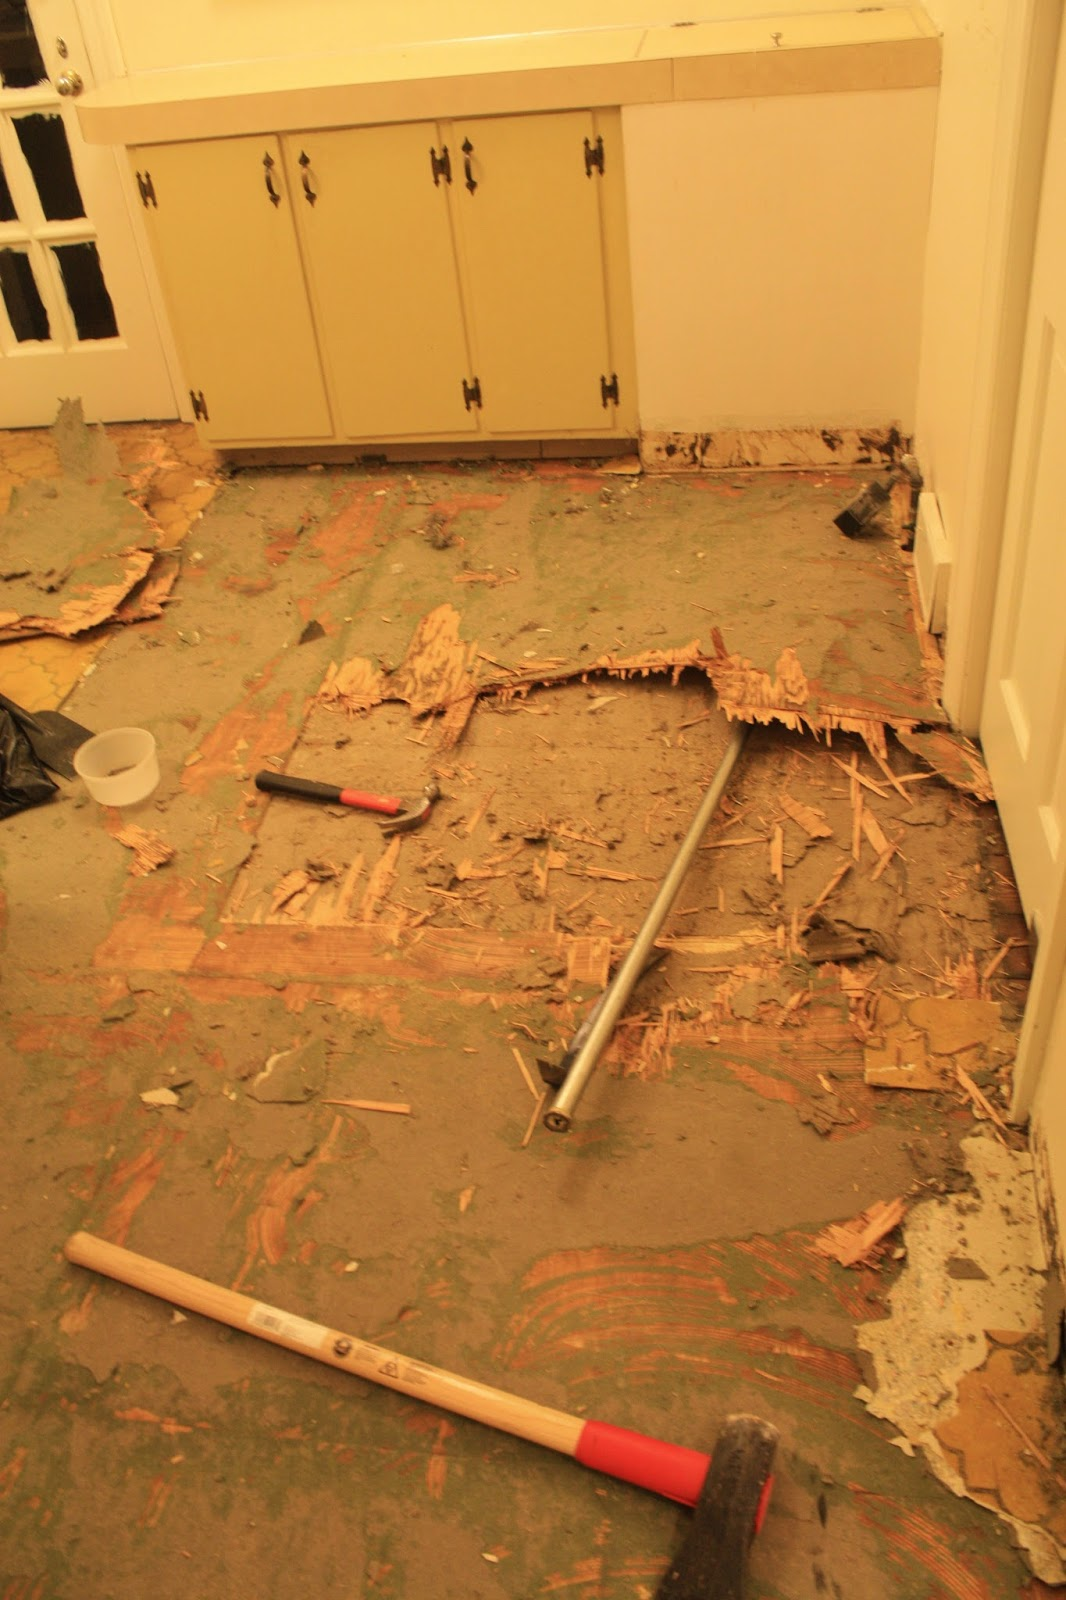 Removing Linoleum - Scraping Up Linoleum - Restoring Wood Floors - Ripping Up Linoleum - Removing Black Tar from Wood Floors